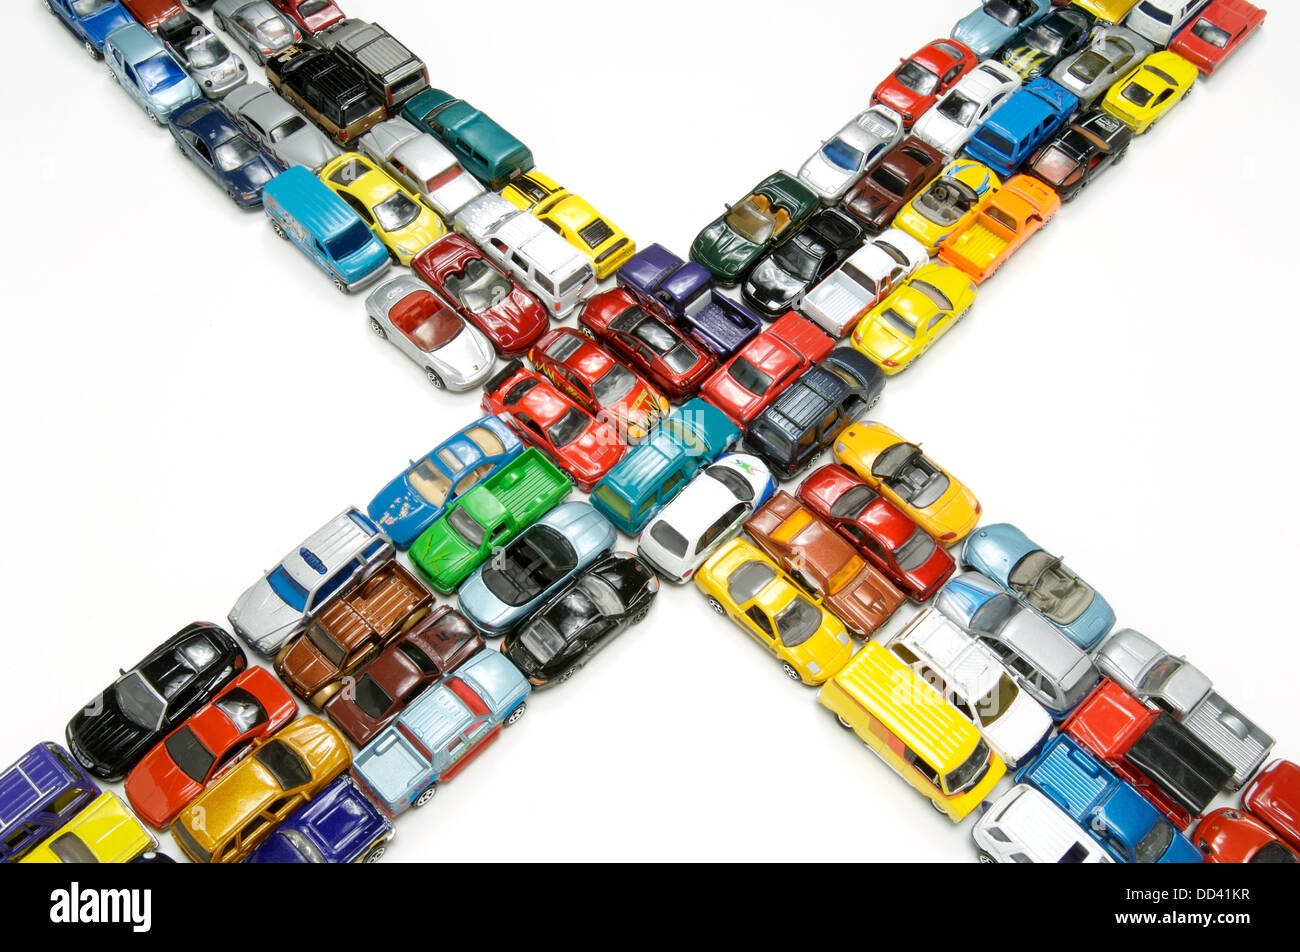 A traffic jam of miniature toy cars at an intersection. - Stock Image